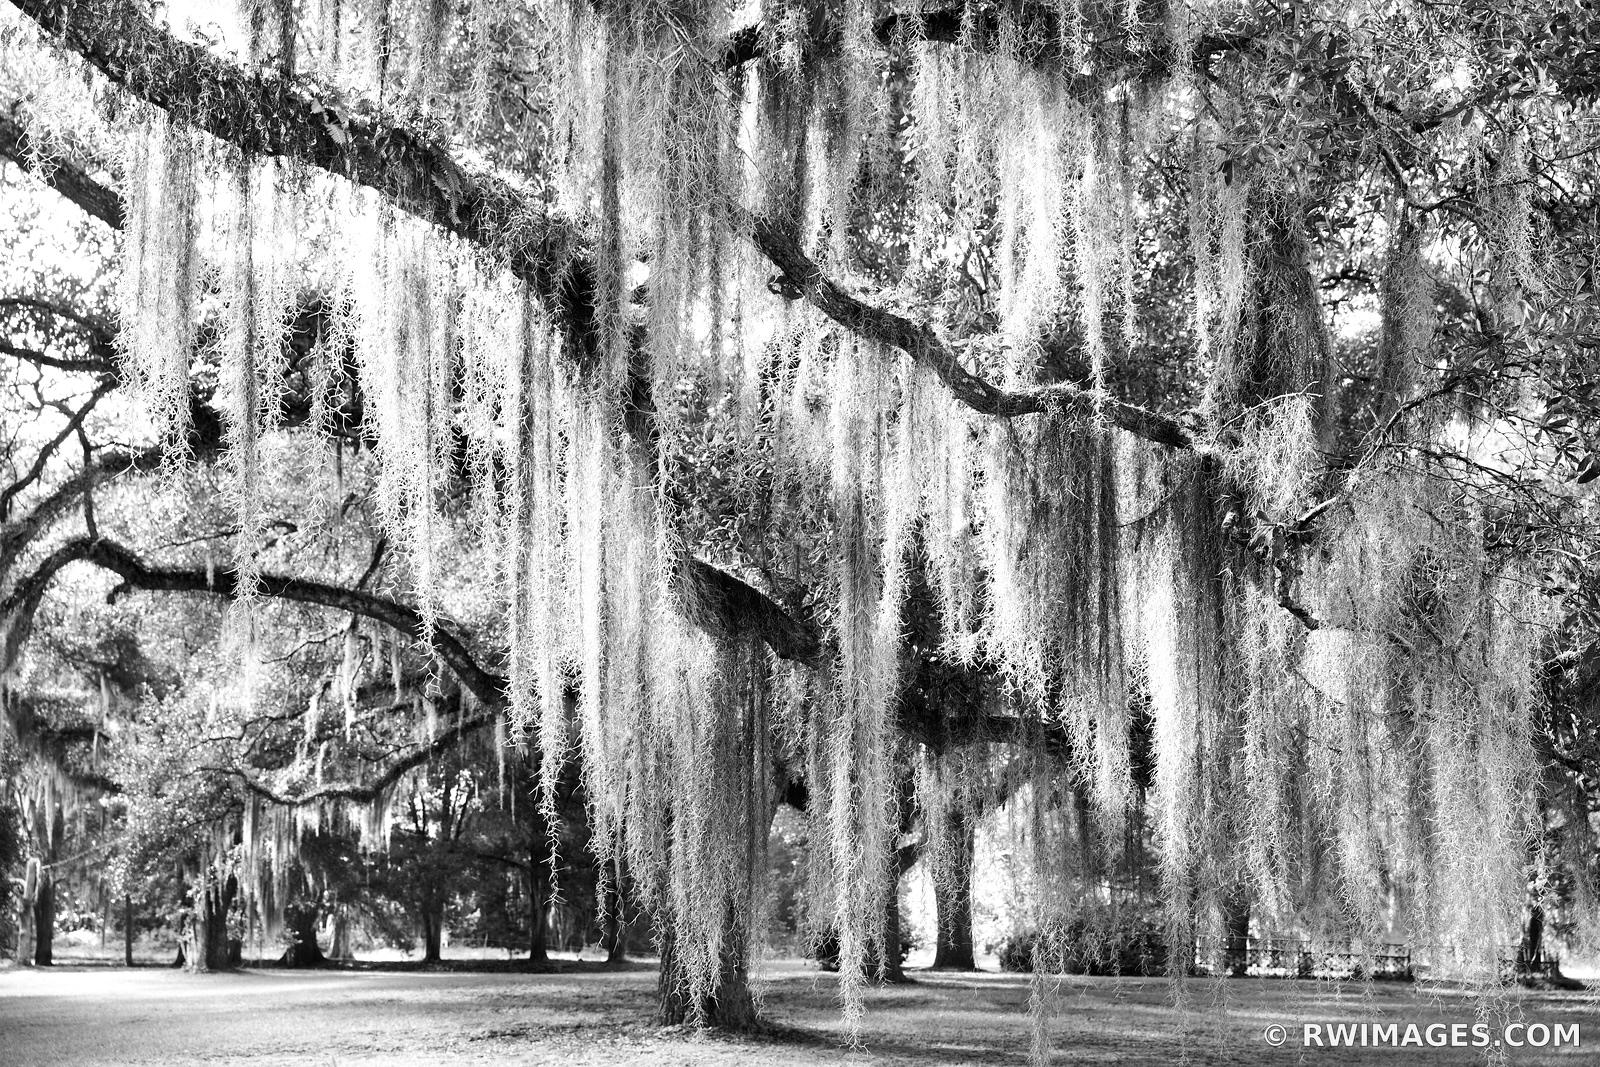 LIVE OAK TREES SPANISH MOSS ST. FRANCISVILLE LOUISIANA BLACK AND WHITE